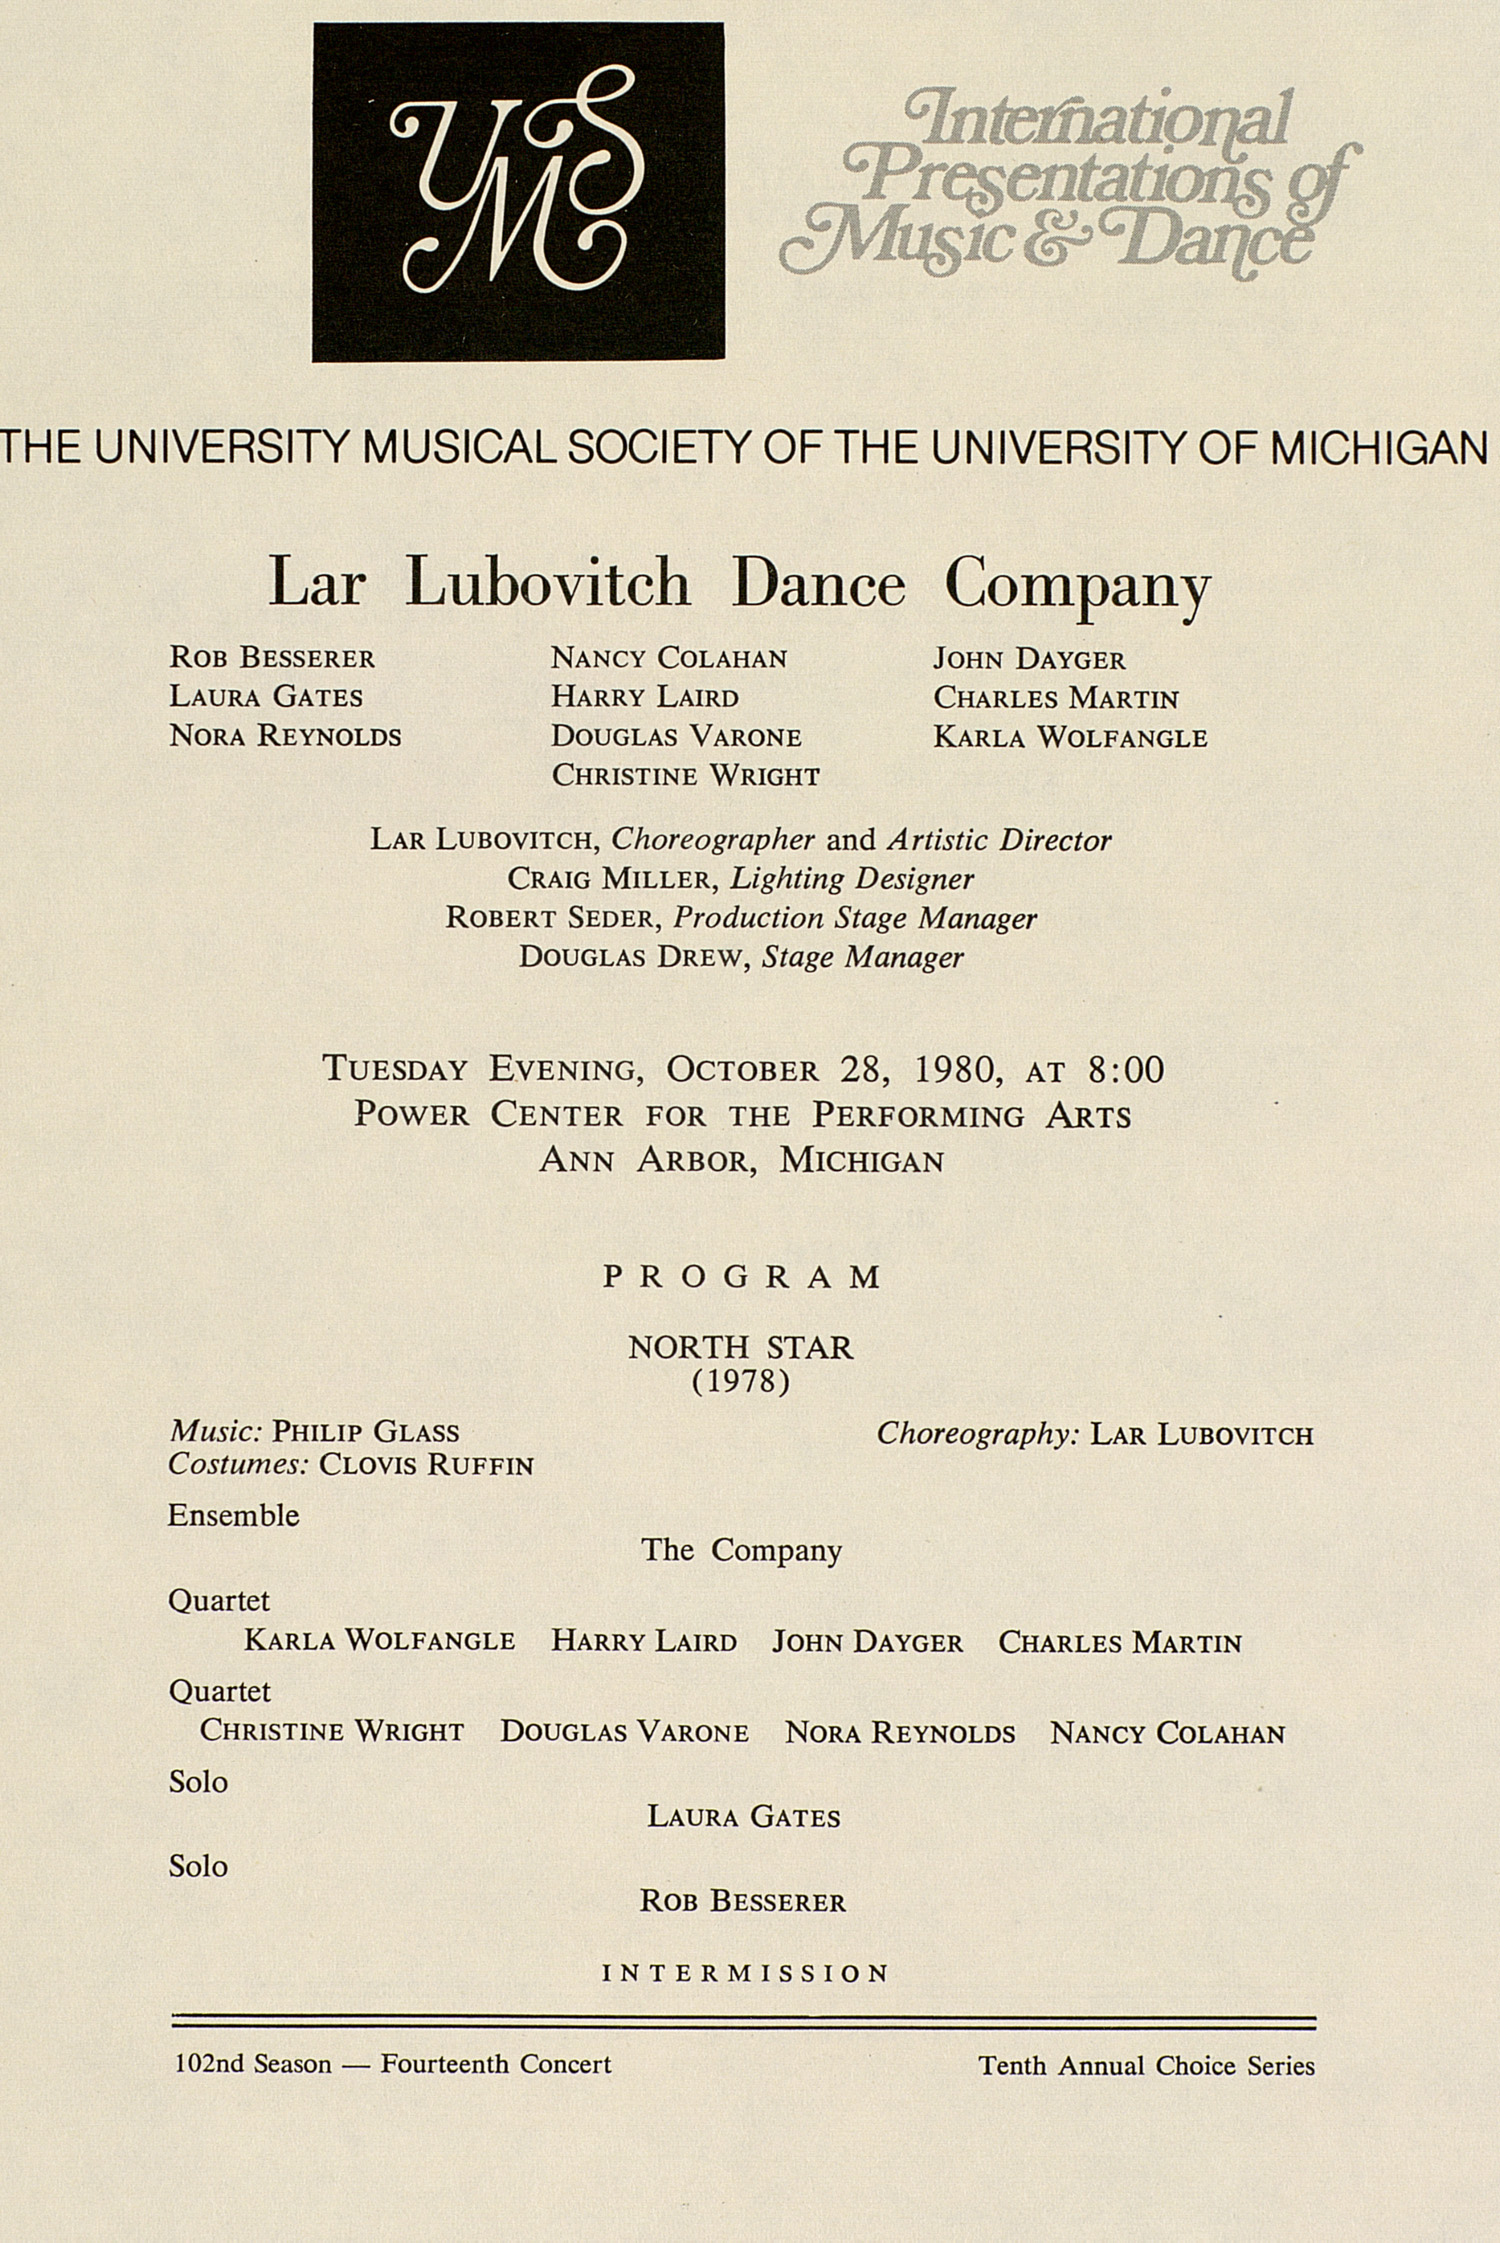 UMS Concert Program, October 28, 1980: International Presentations Of Music & Dance -- Lar Lubovitch Dance Company image